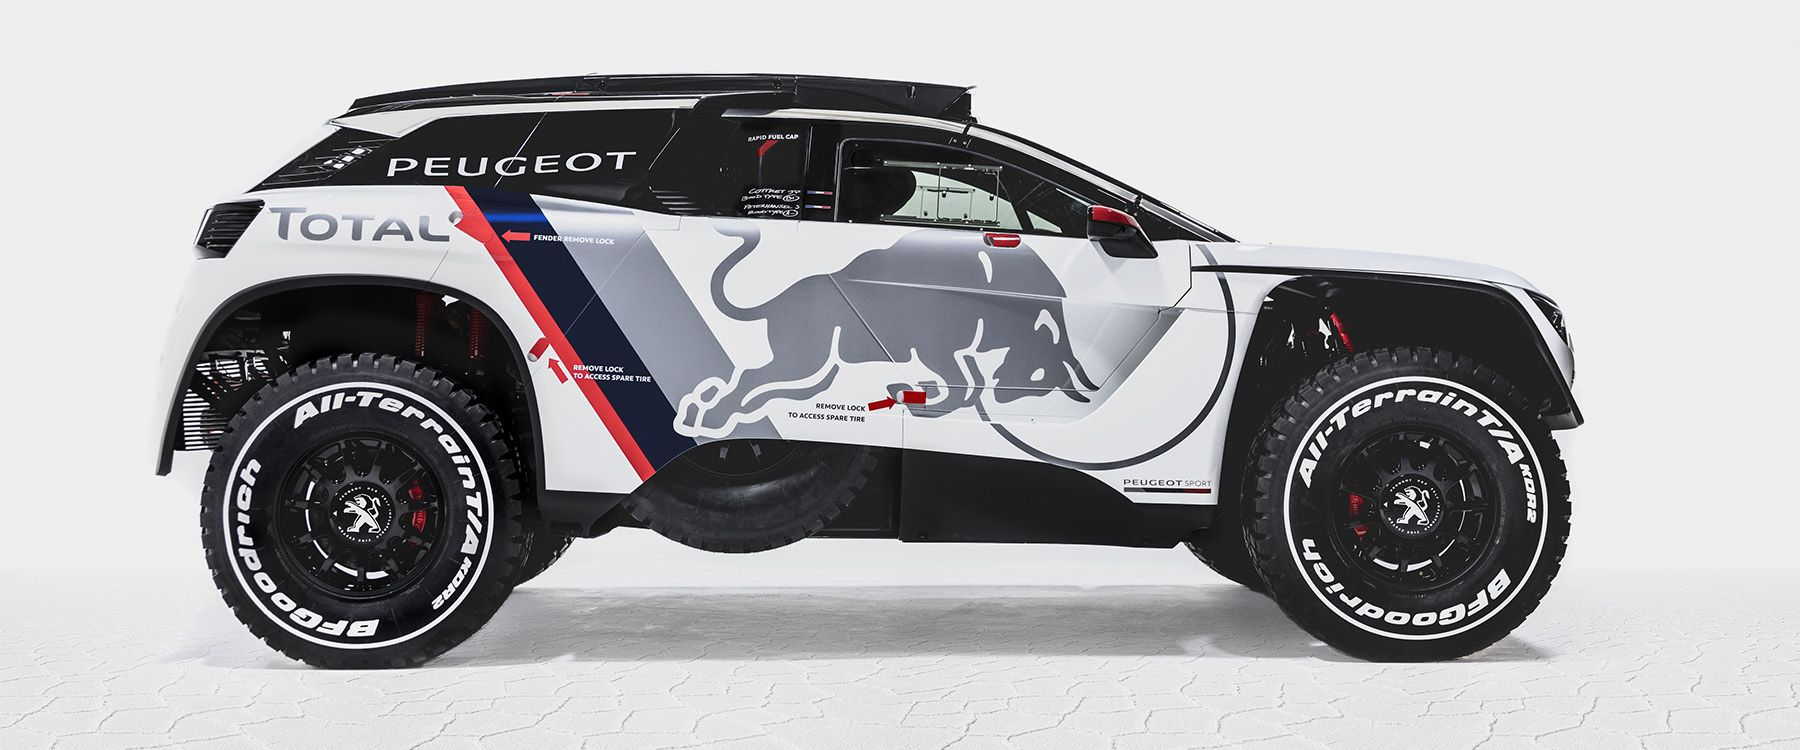 the 3008 dkr remains loyal to peugeot's two-wheel drive philosophy